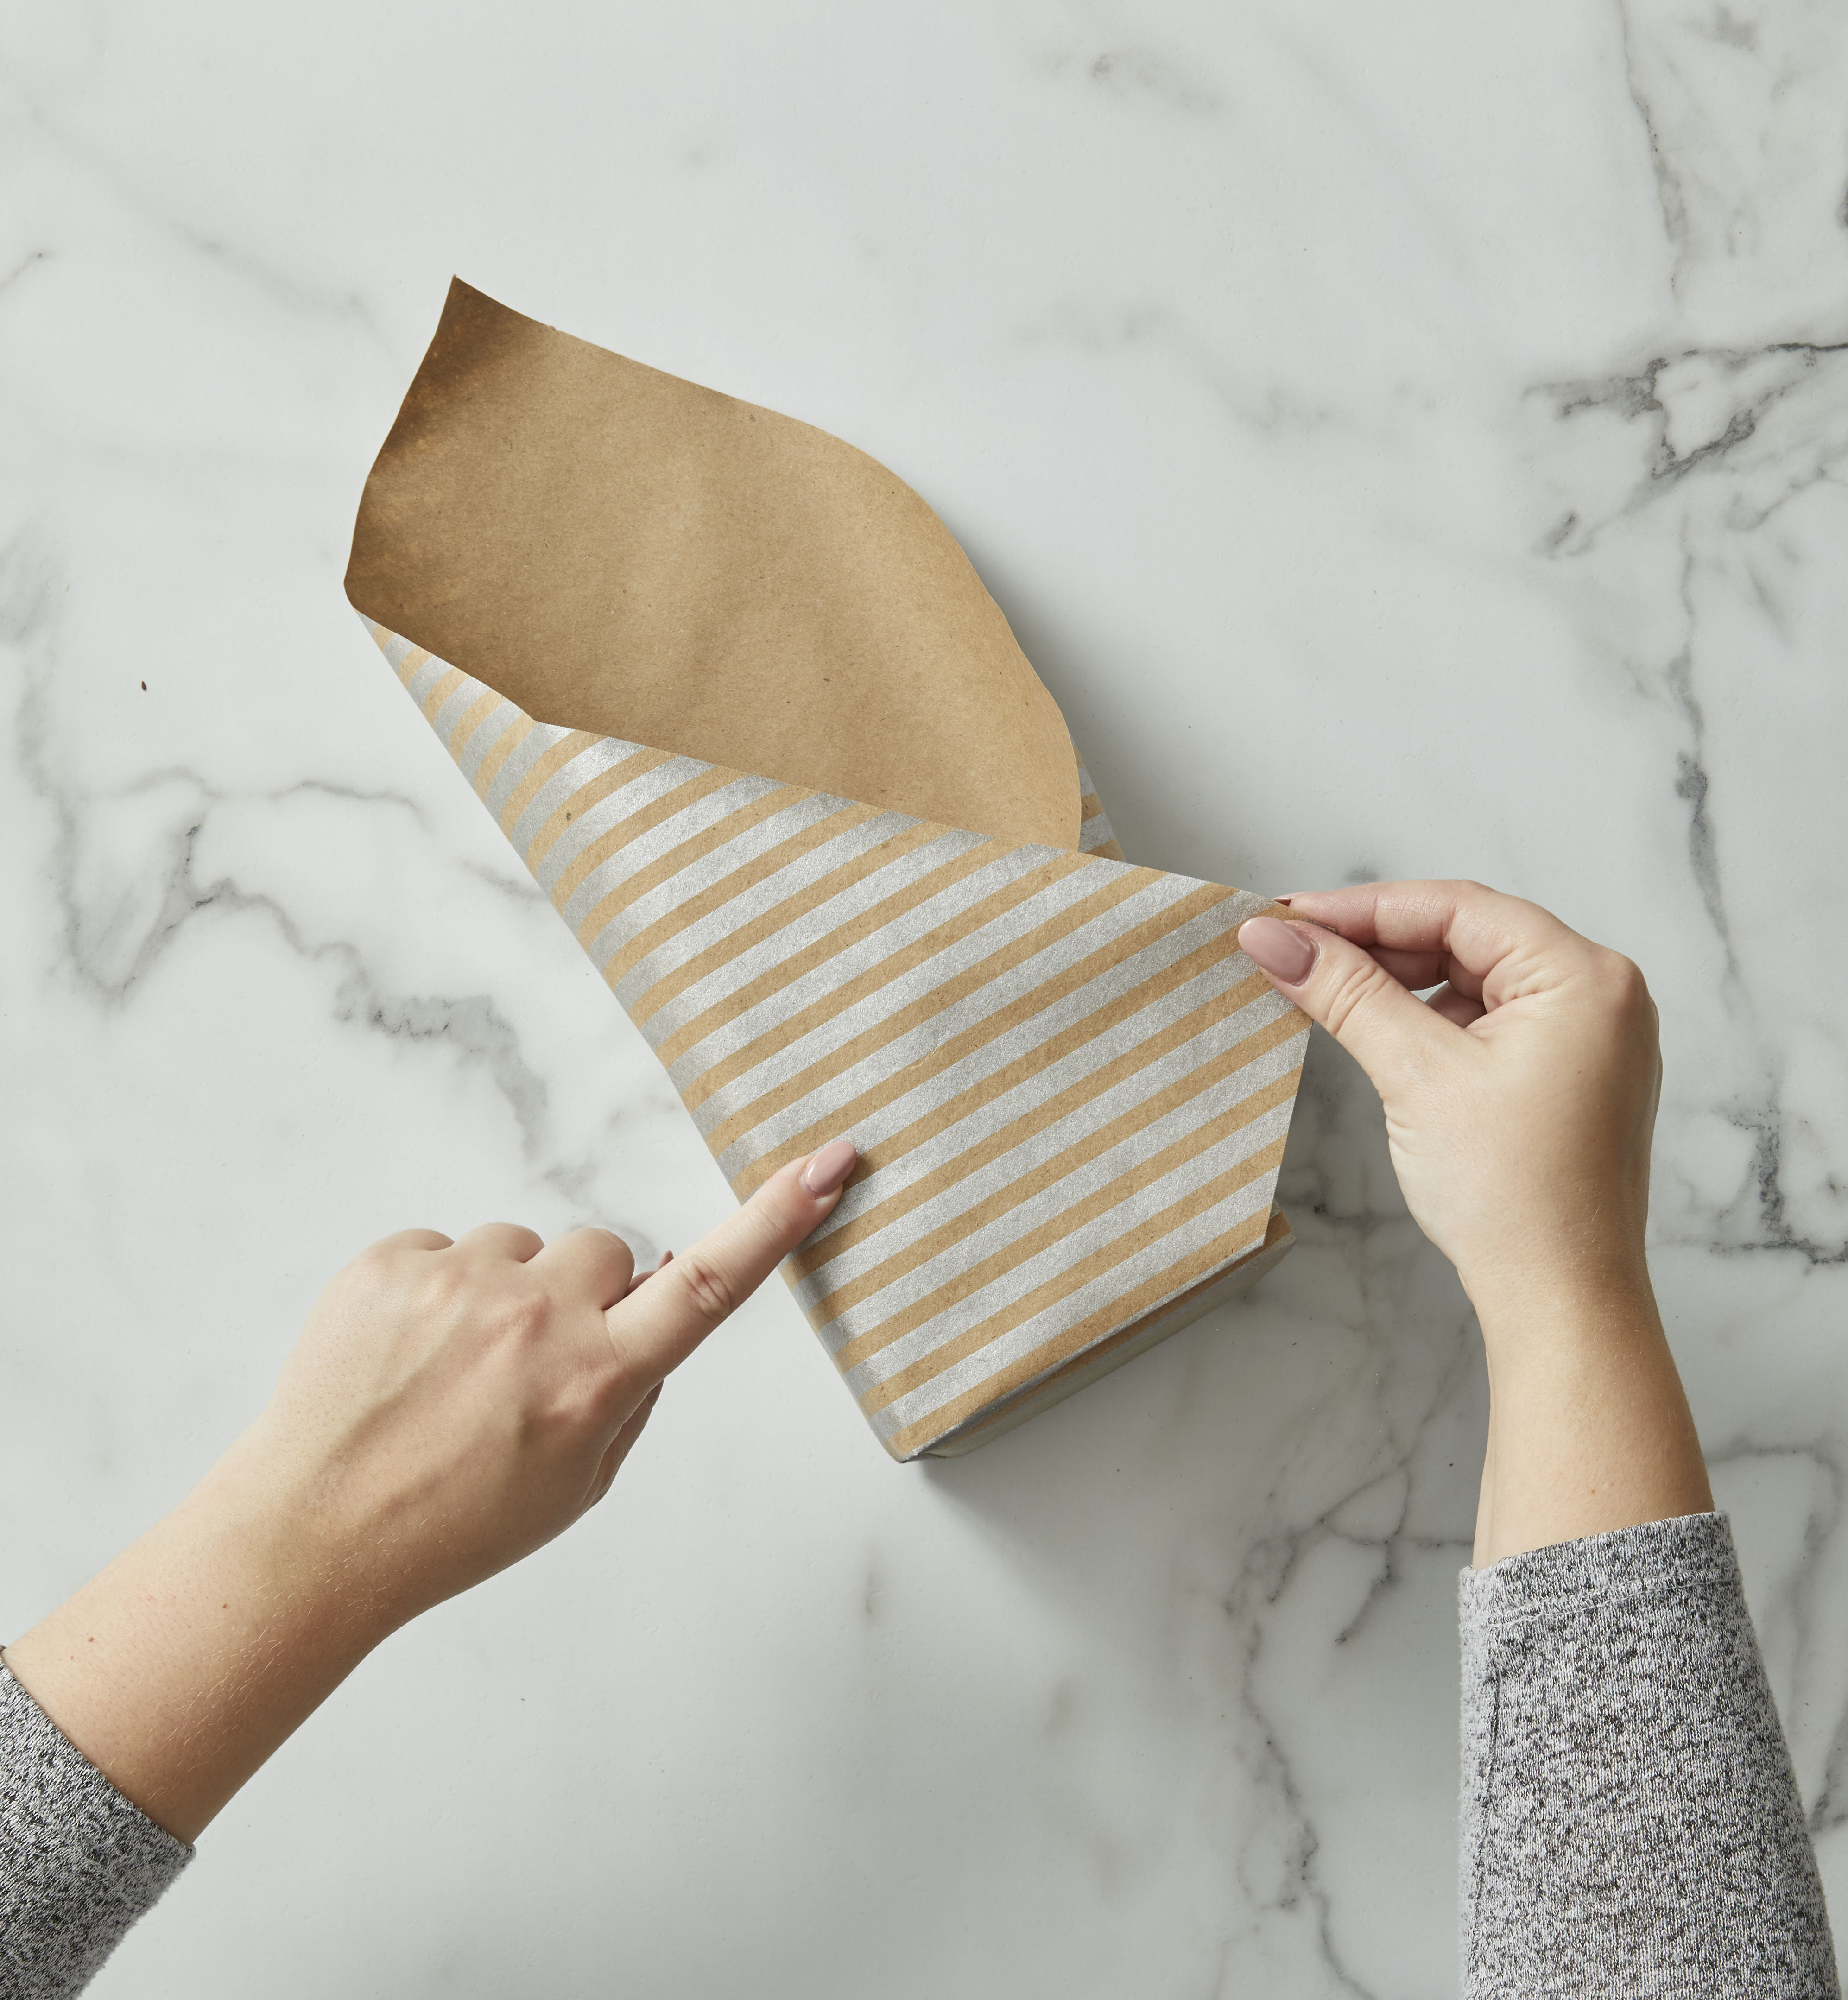 Wrapping brown striped kraft paper up and over a square box